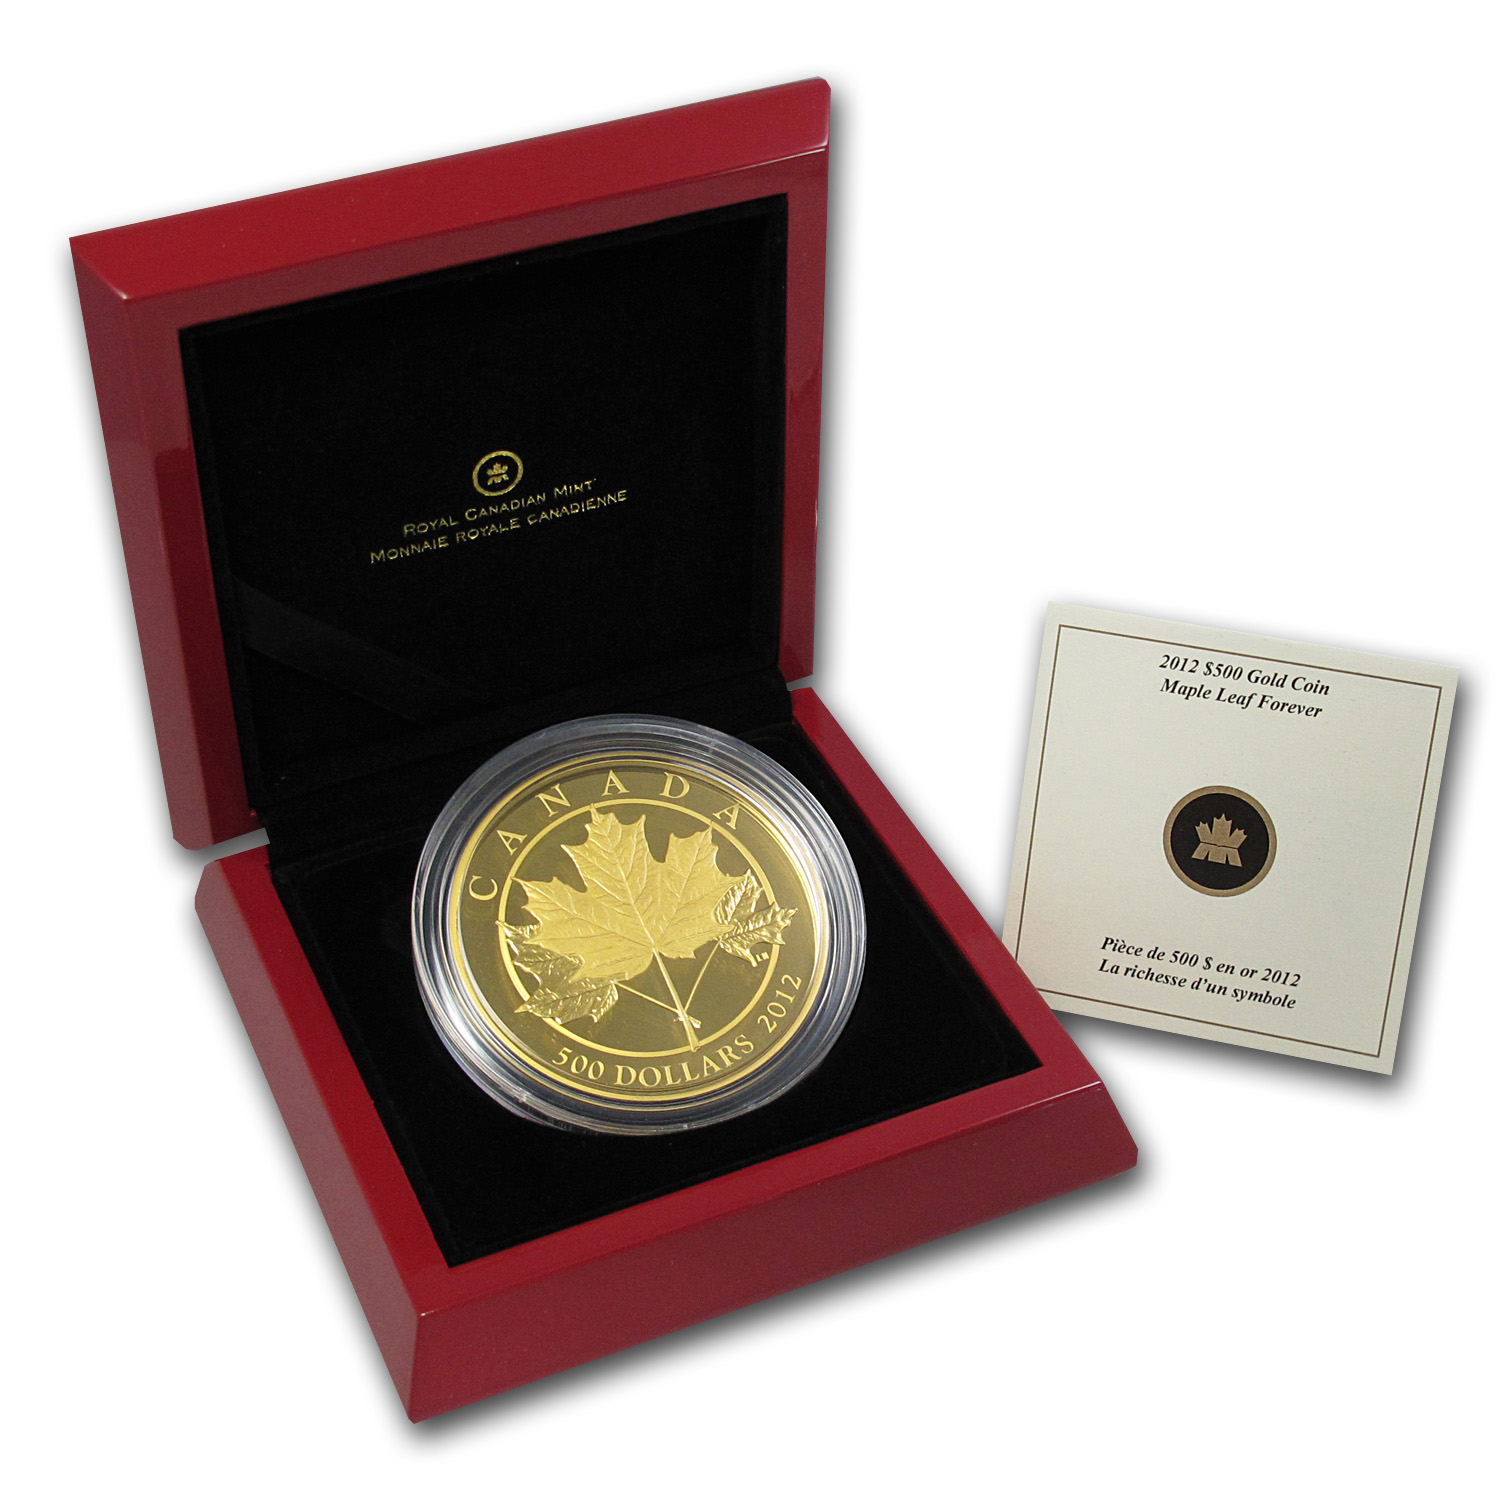 2012 5 oz Gold Canadian $500 Maple Leaf Forever - Proof